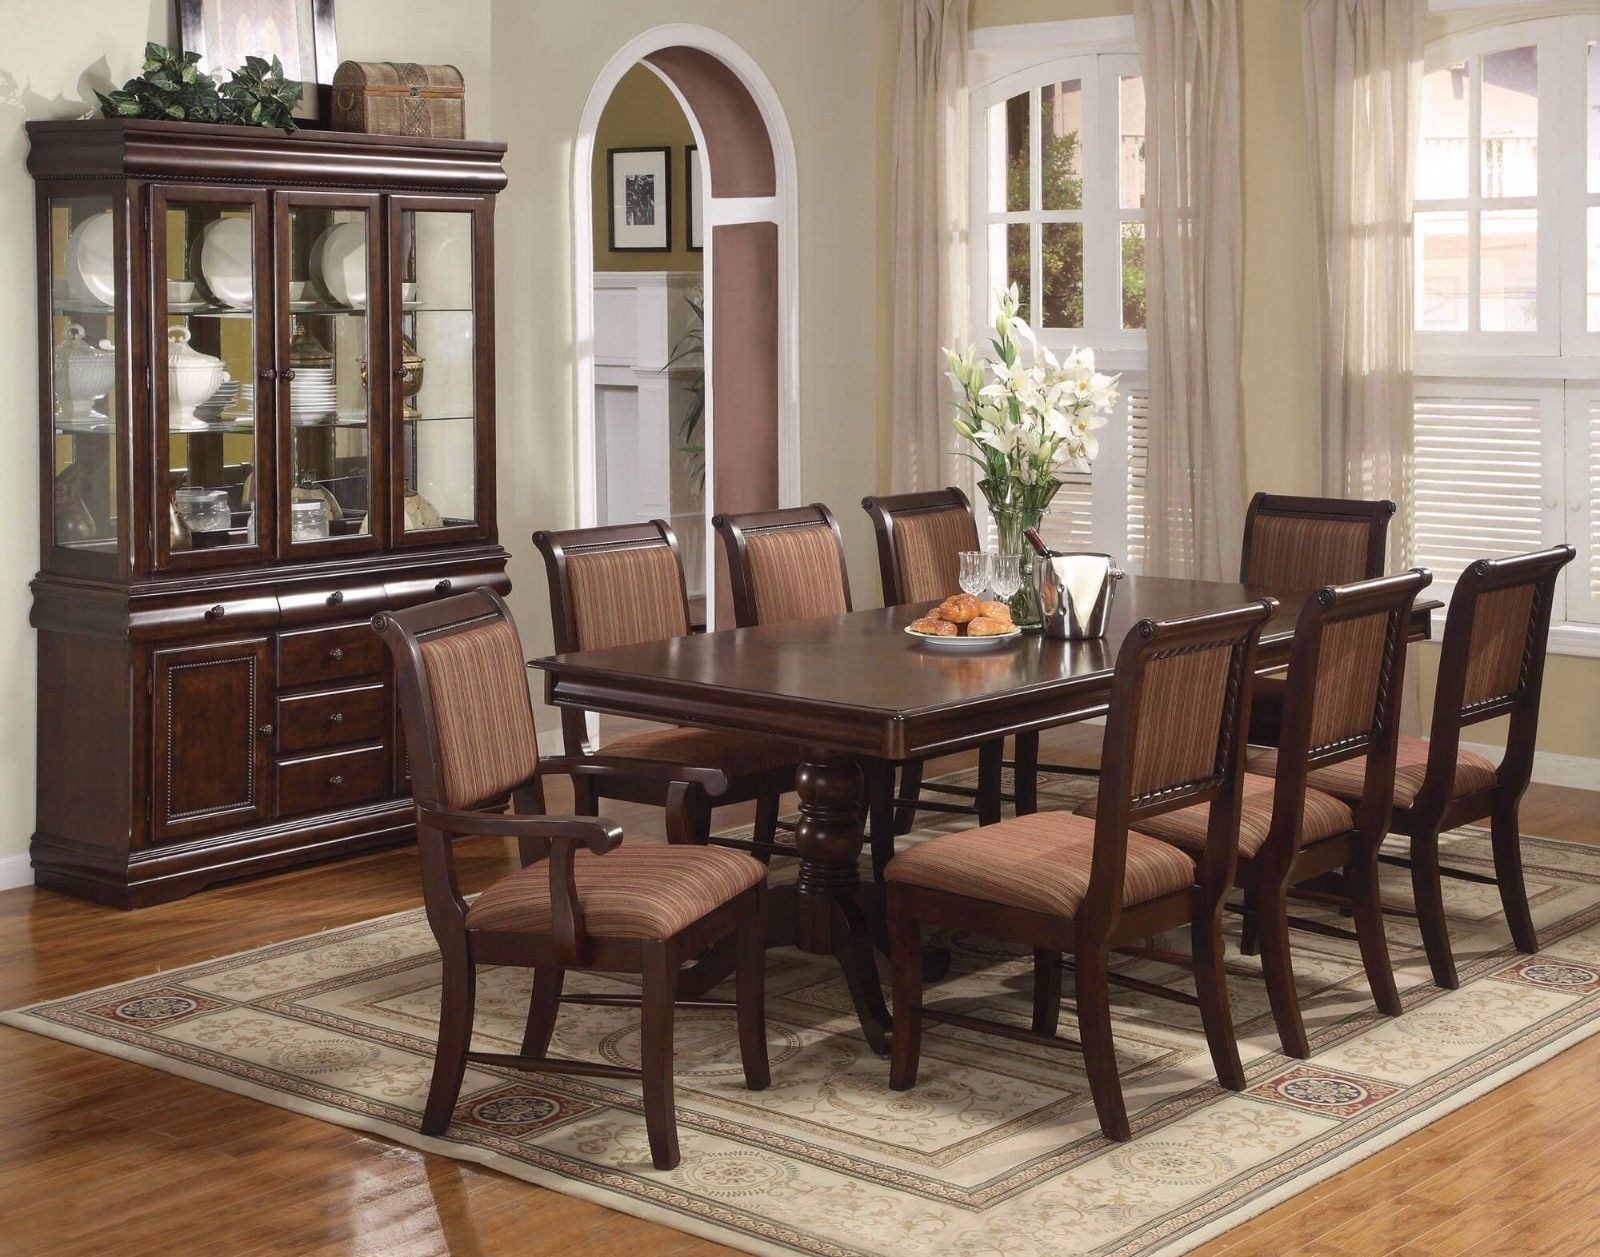 Crown Mark 2145 Dining Room Set 7pc. Merlot Cherry Finish Traditional Style